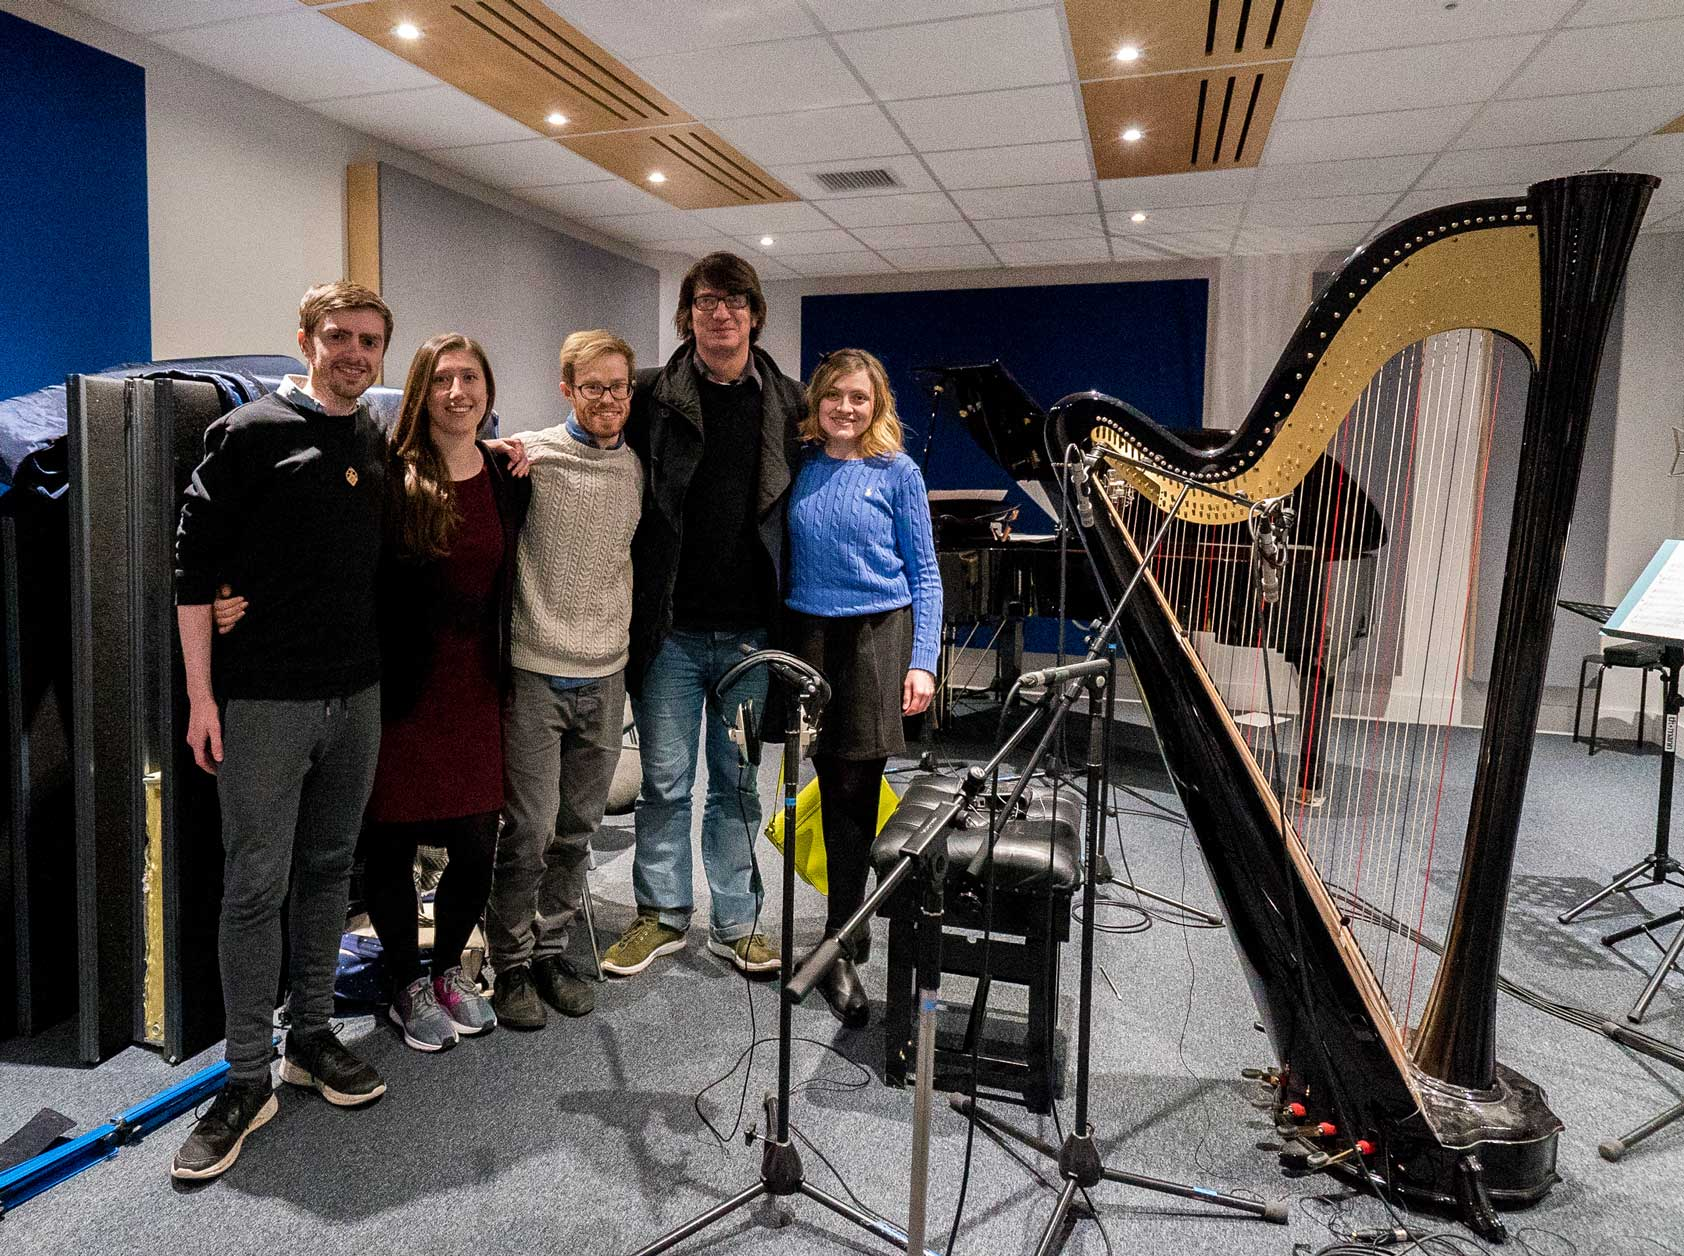 After a day of original soundtrack recordings at the SAE Institute in London, from left to right: Ioan Holland (Director & Writer), Gloria Daniels-Moss (Producer), Aaron Buckley (Soundtrack Composer), Jools Scott (Pianist), Cerian Holland (Harpist)